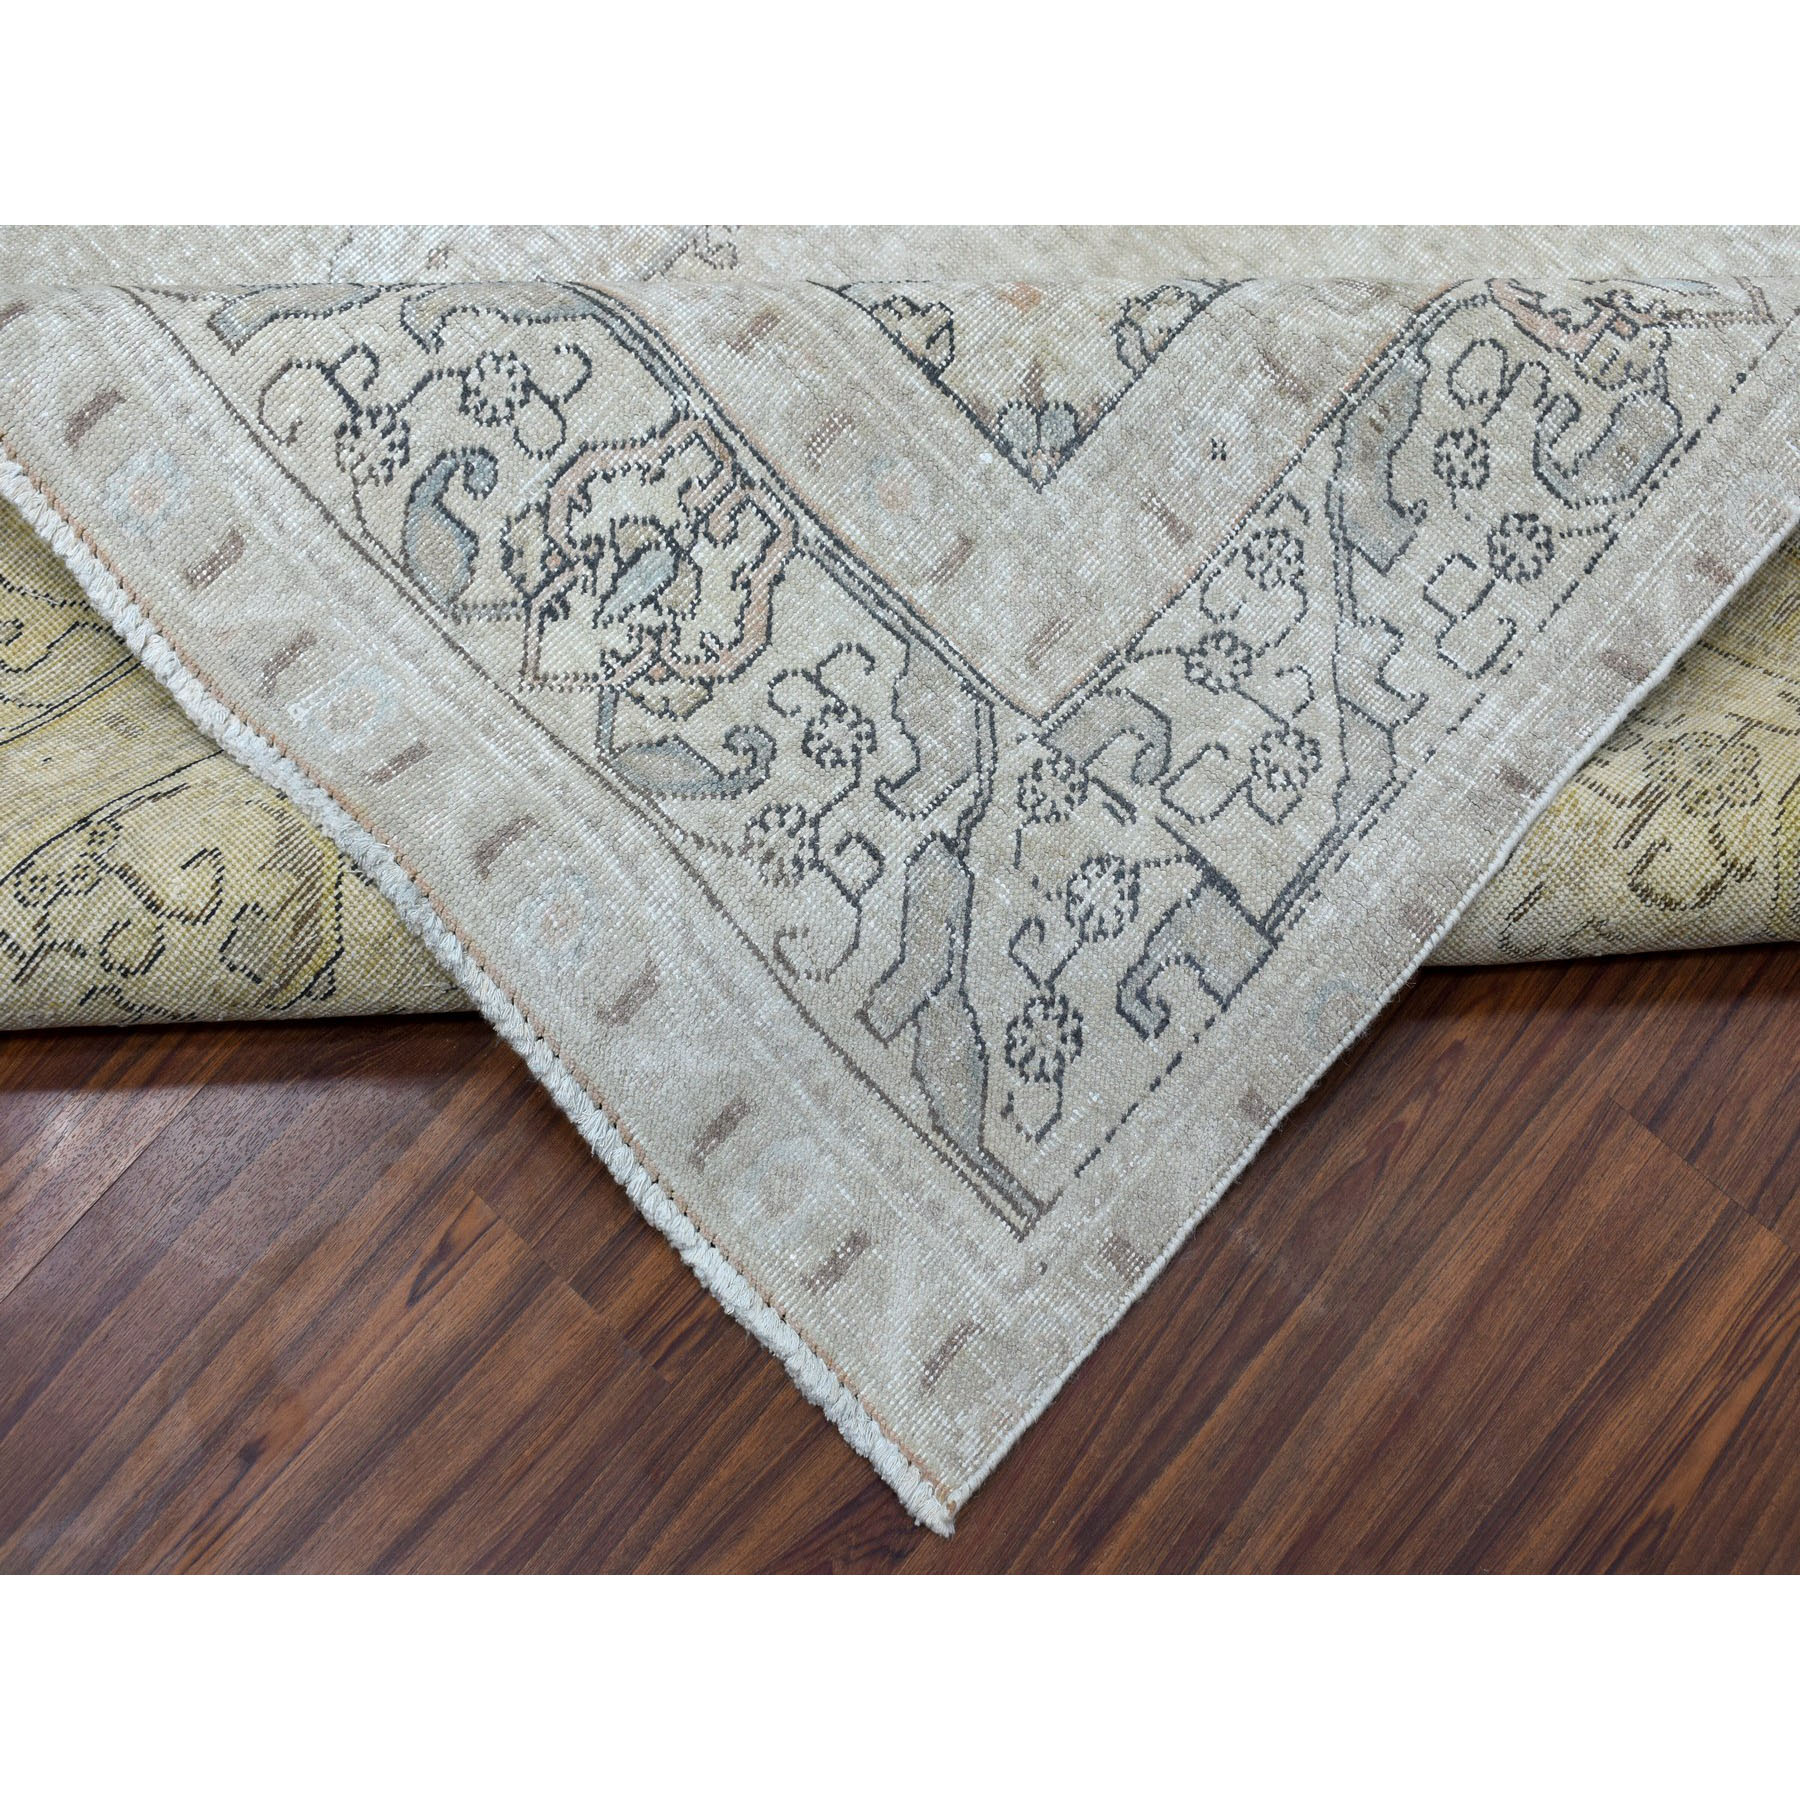 9-5 x12-6  Gray Vintage White Wash Tabriz Worn Wool Tribal Hand-Knotted Oriental Rug